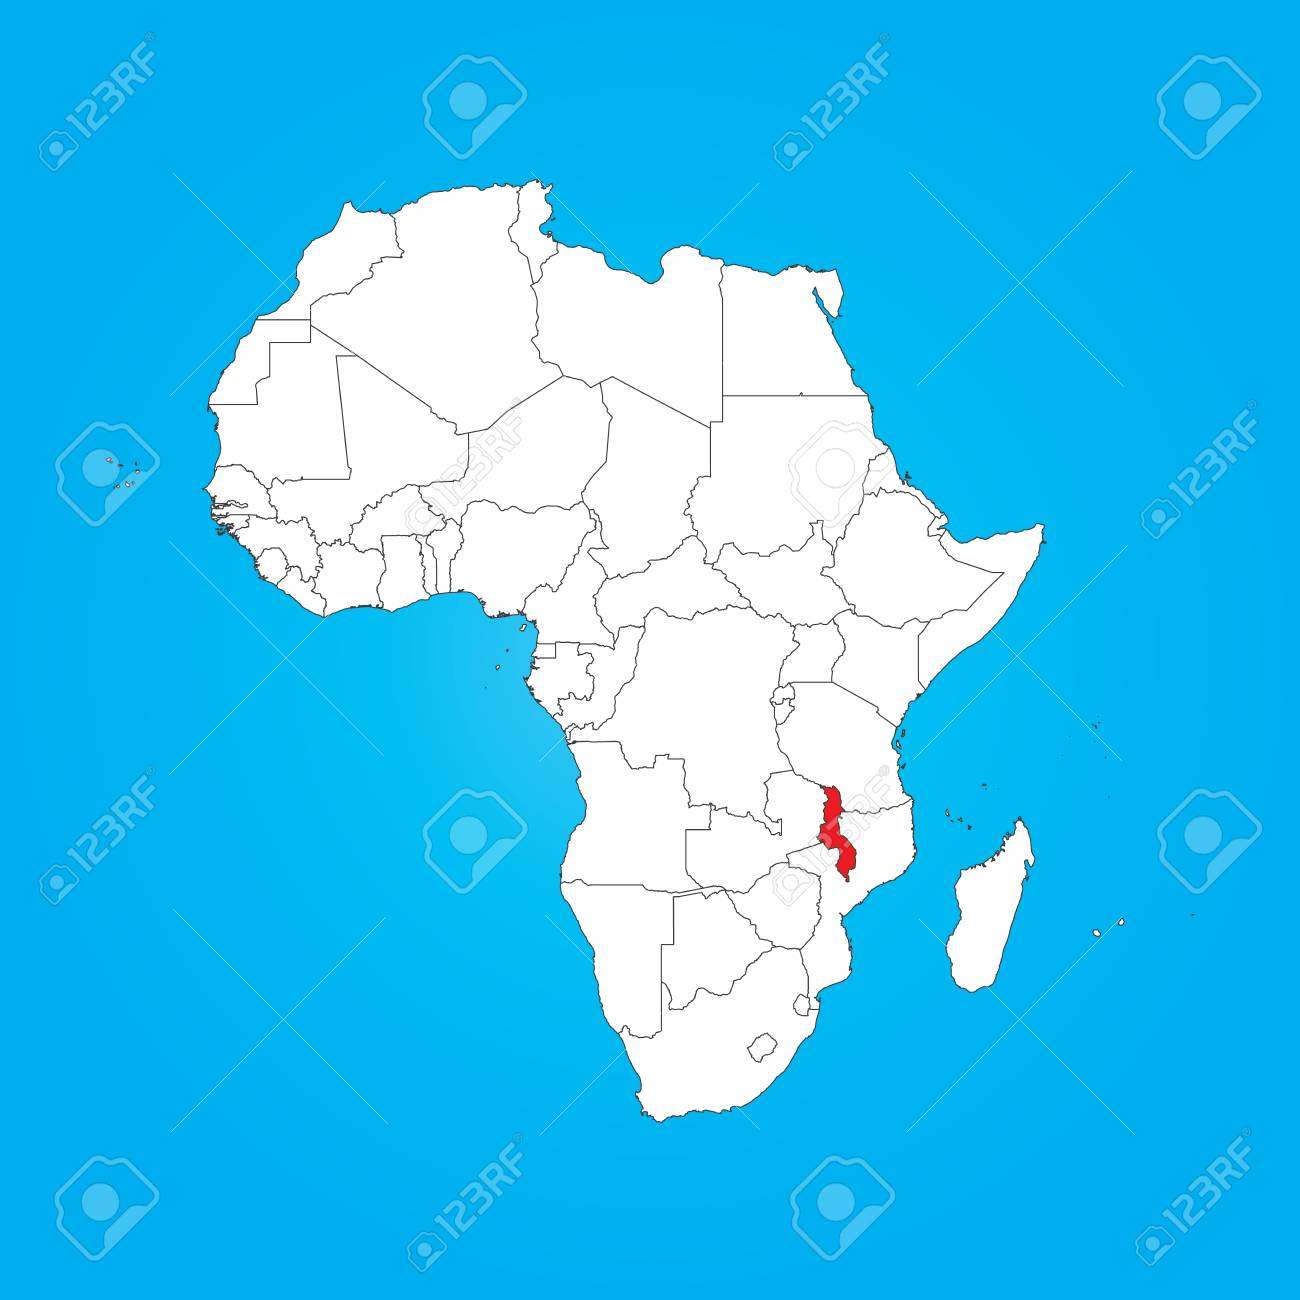 A Map of Africa with a selected country of Malawi Malawi Africa Map on malawi religion, malawi food, malawi currency, europe map, malawi culture, malawi animals, malawi president, malawi landscape, malawi army, world map, malawi people, malawi flag, malawi sports, malawi houses, malawi capital, malawi wildlife,